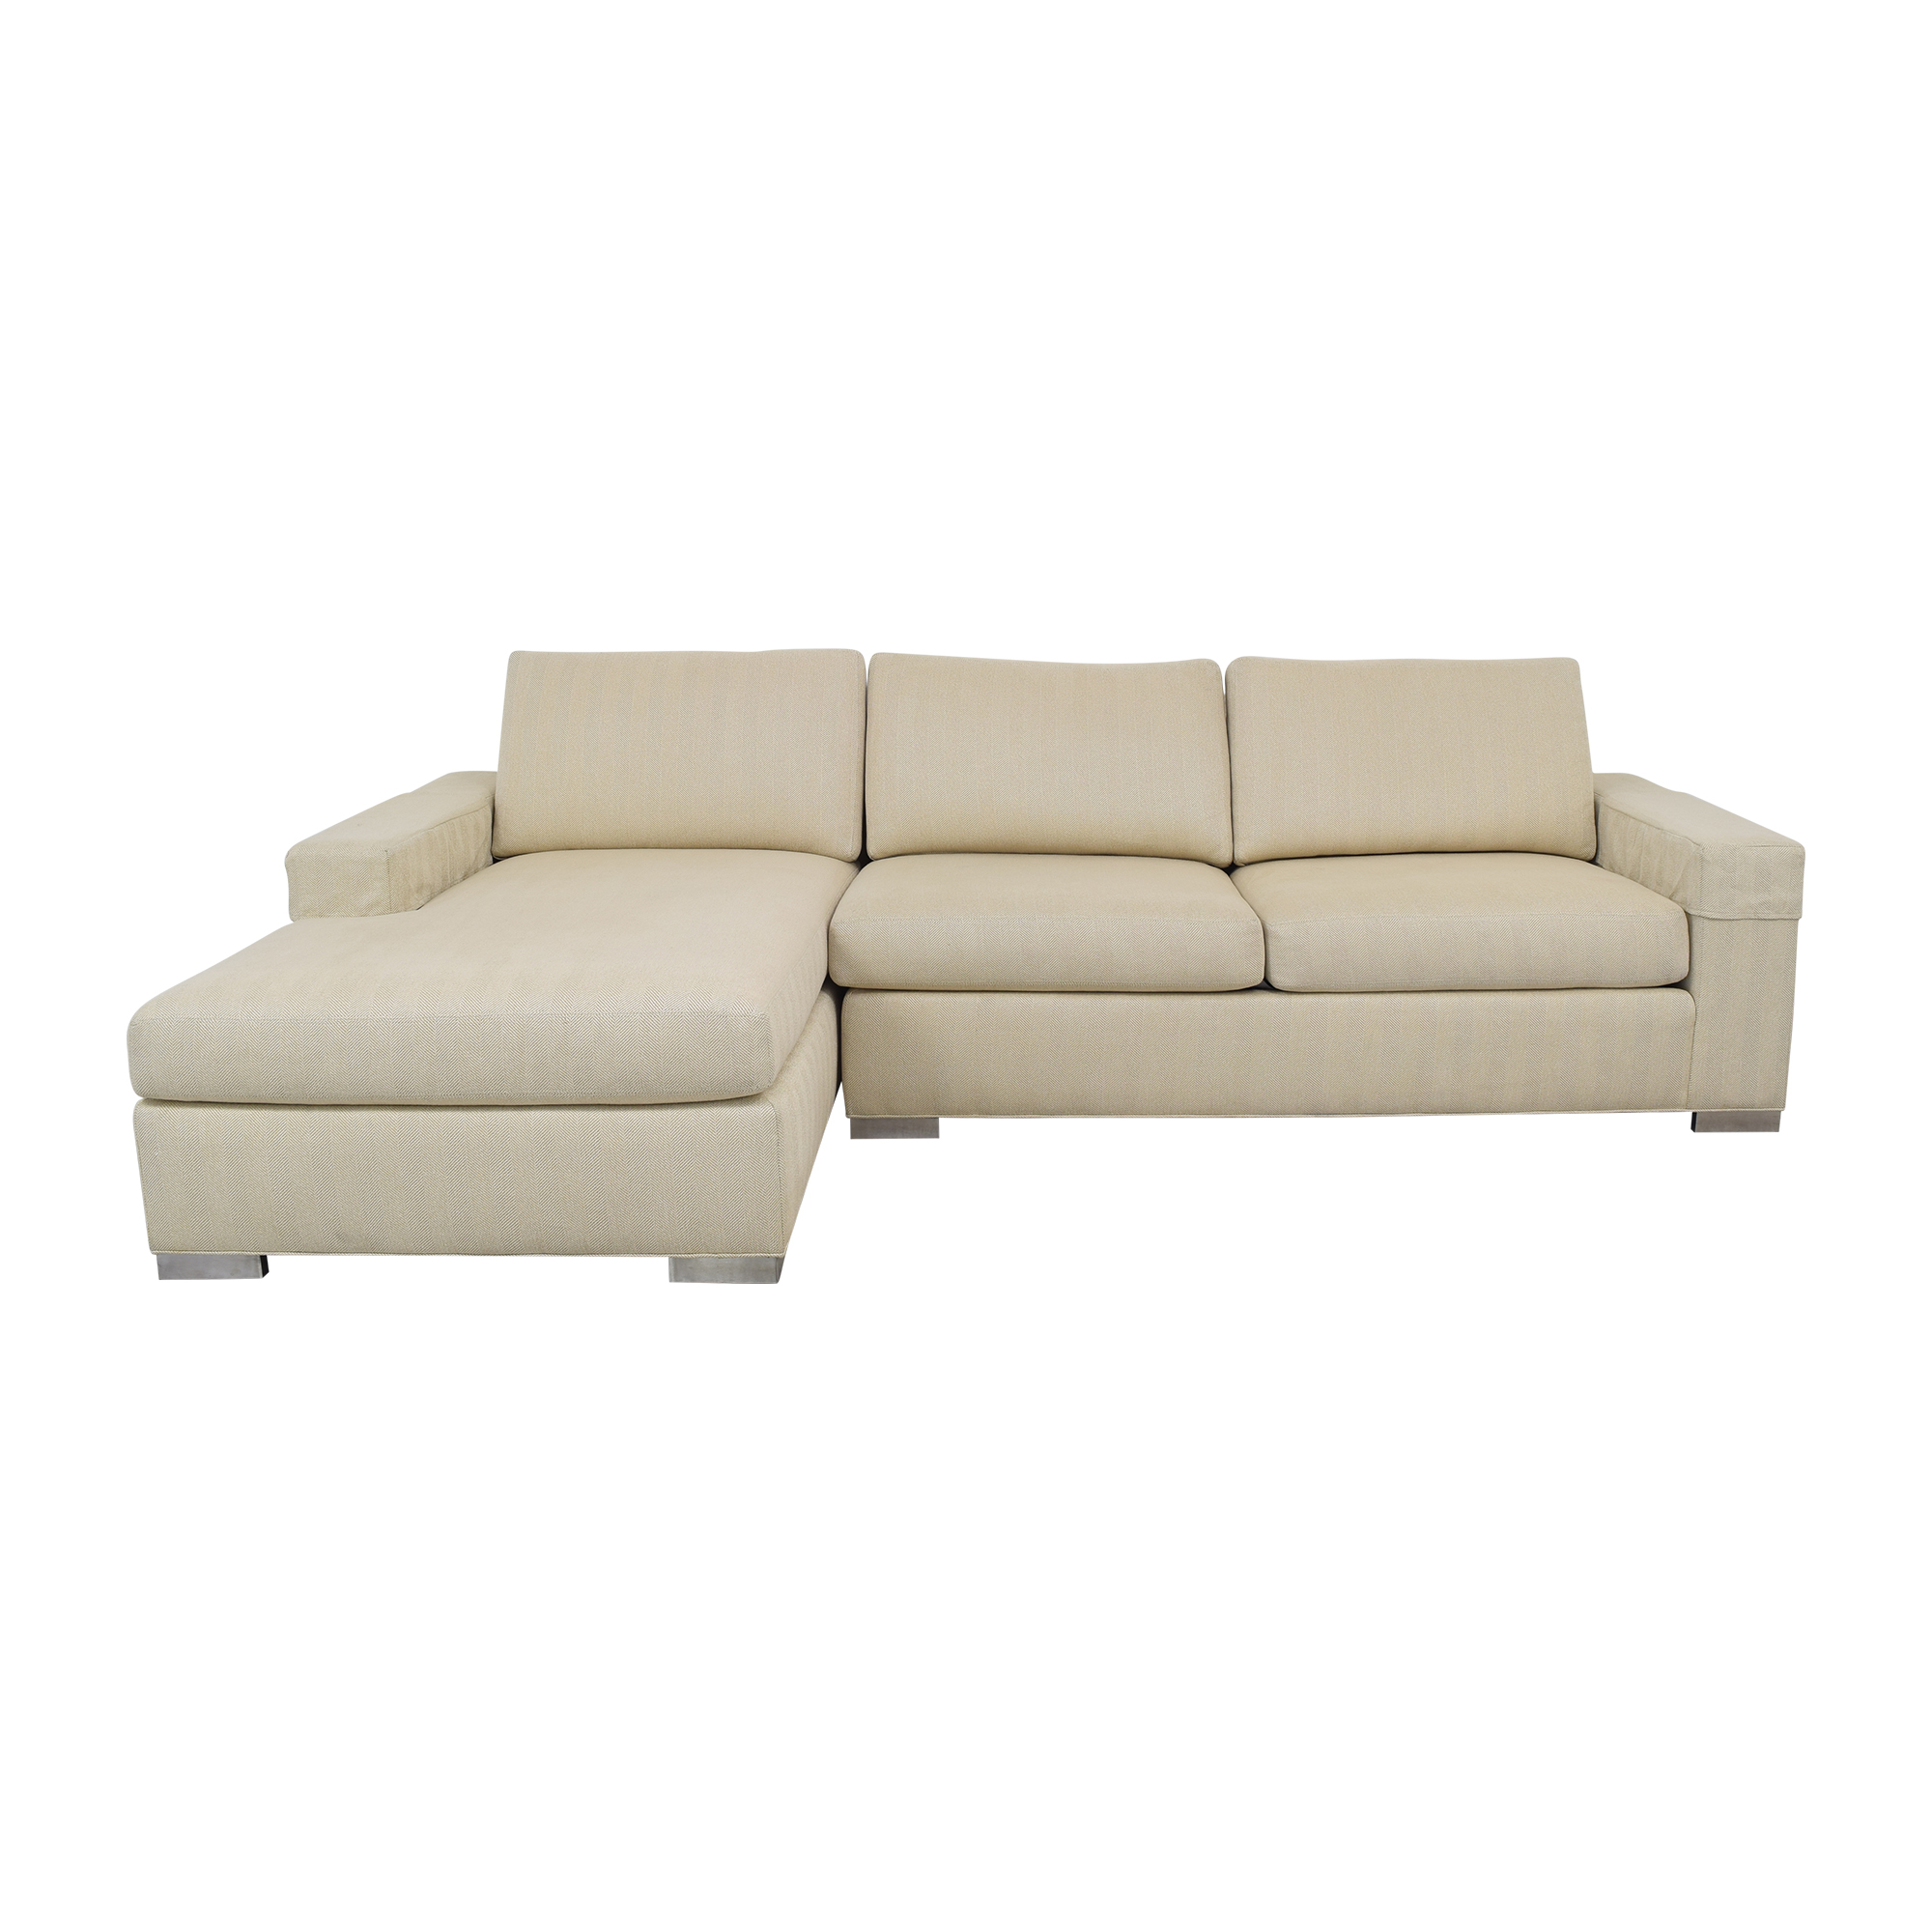 Ethan Allen Conway Sectional Sofa / Sectionals